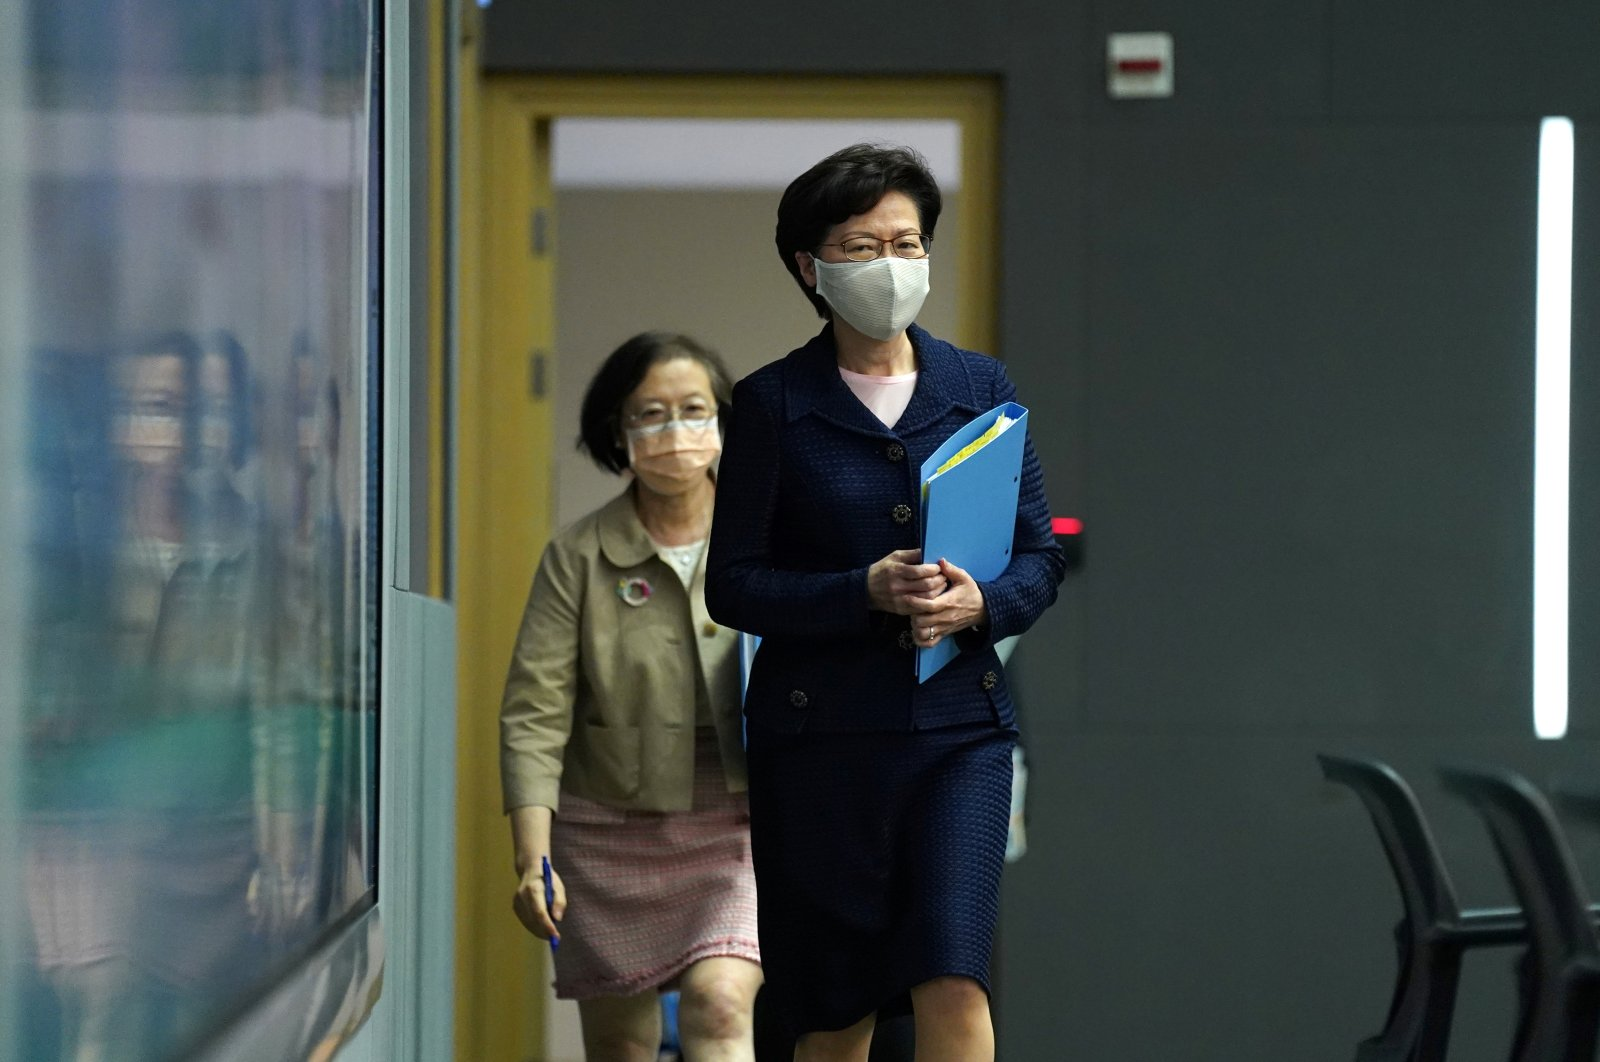 Hong Kong Chief Executive Carrie Lam, wearing a face mask following the coronavirus outbreak, arrives for a news conference in Hong Kong, China, July 31, 2020. (Reuters Photo)